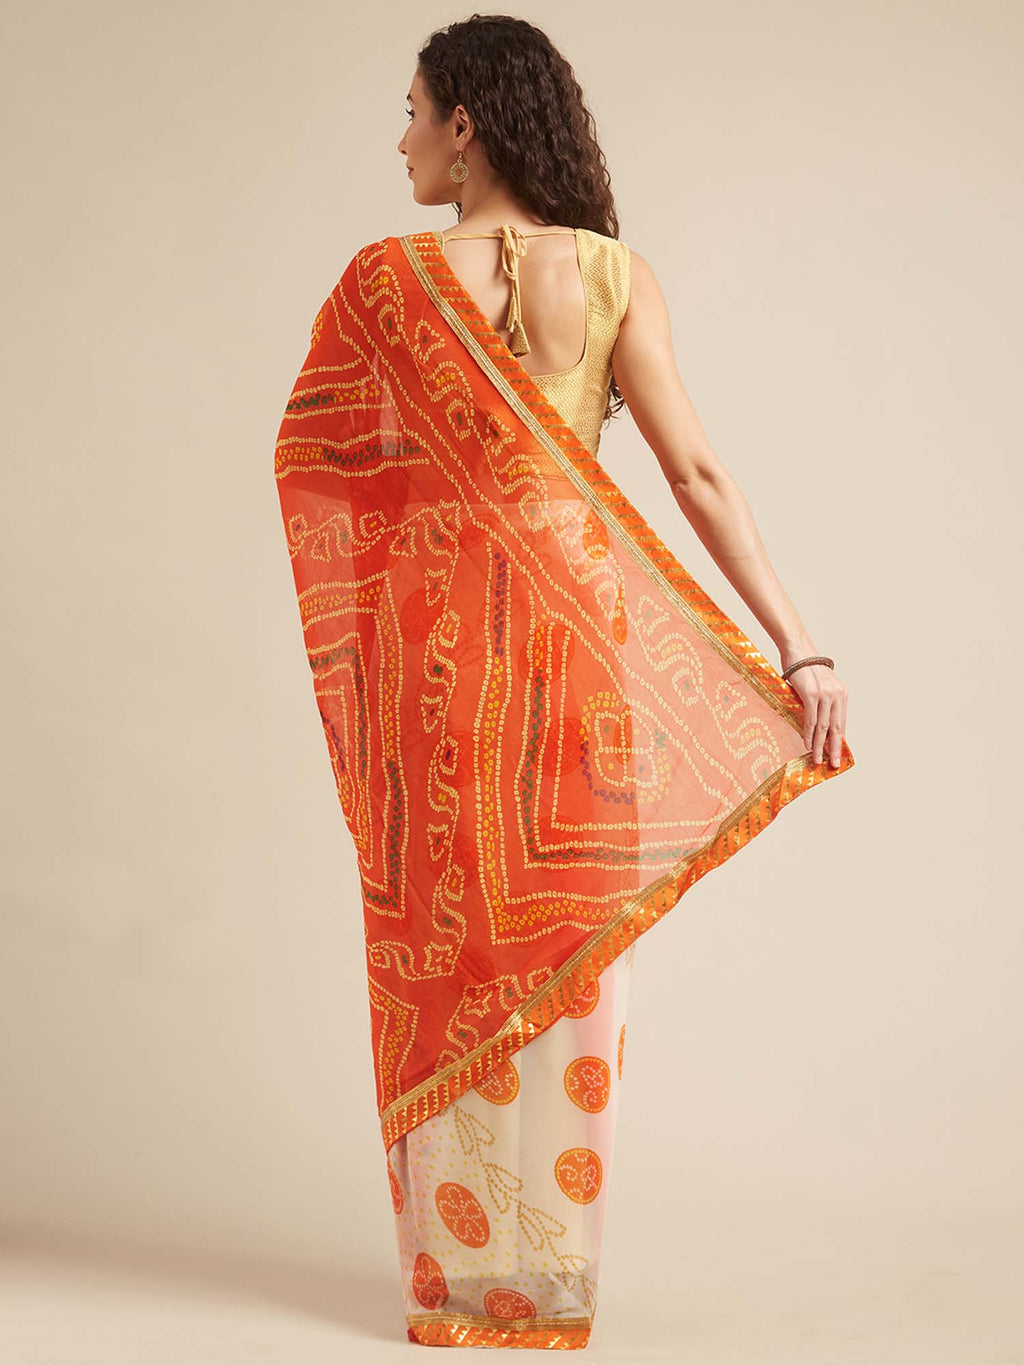 Off White and Orange Poly Georgette Bandhani Design Saree with Printed Lace - Riviera Closet